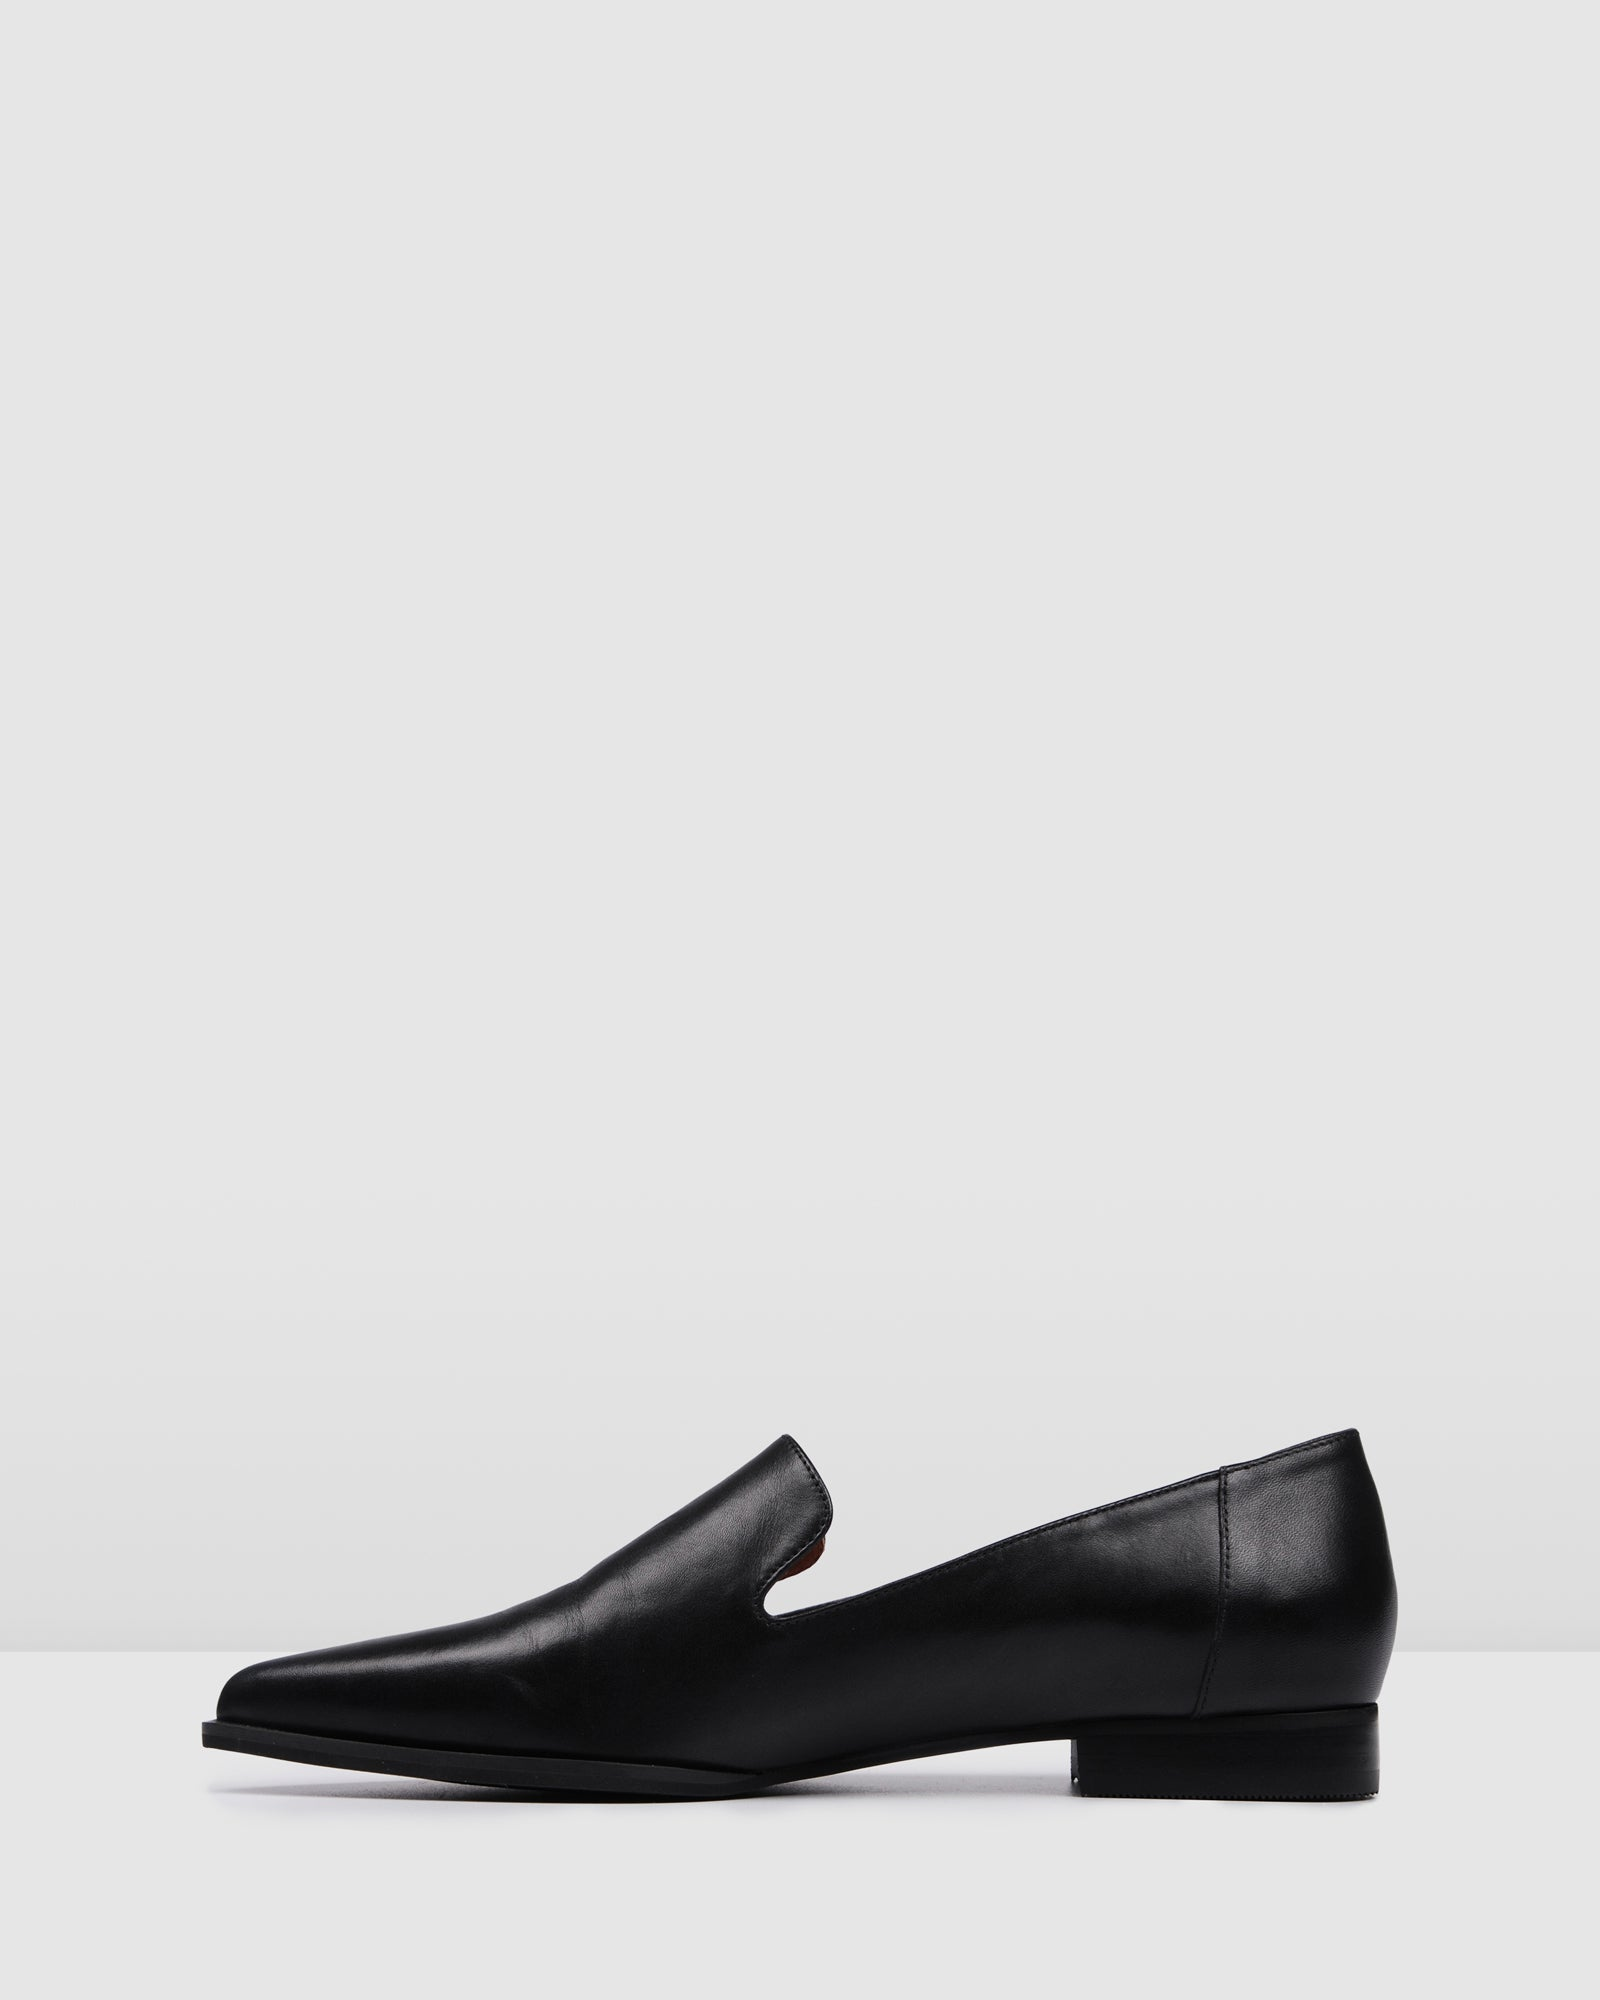 ETERNITY CASUAL FLATS BLACK LEATHER